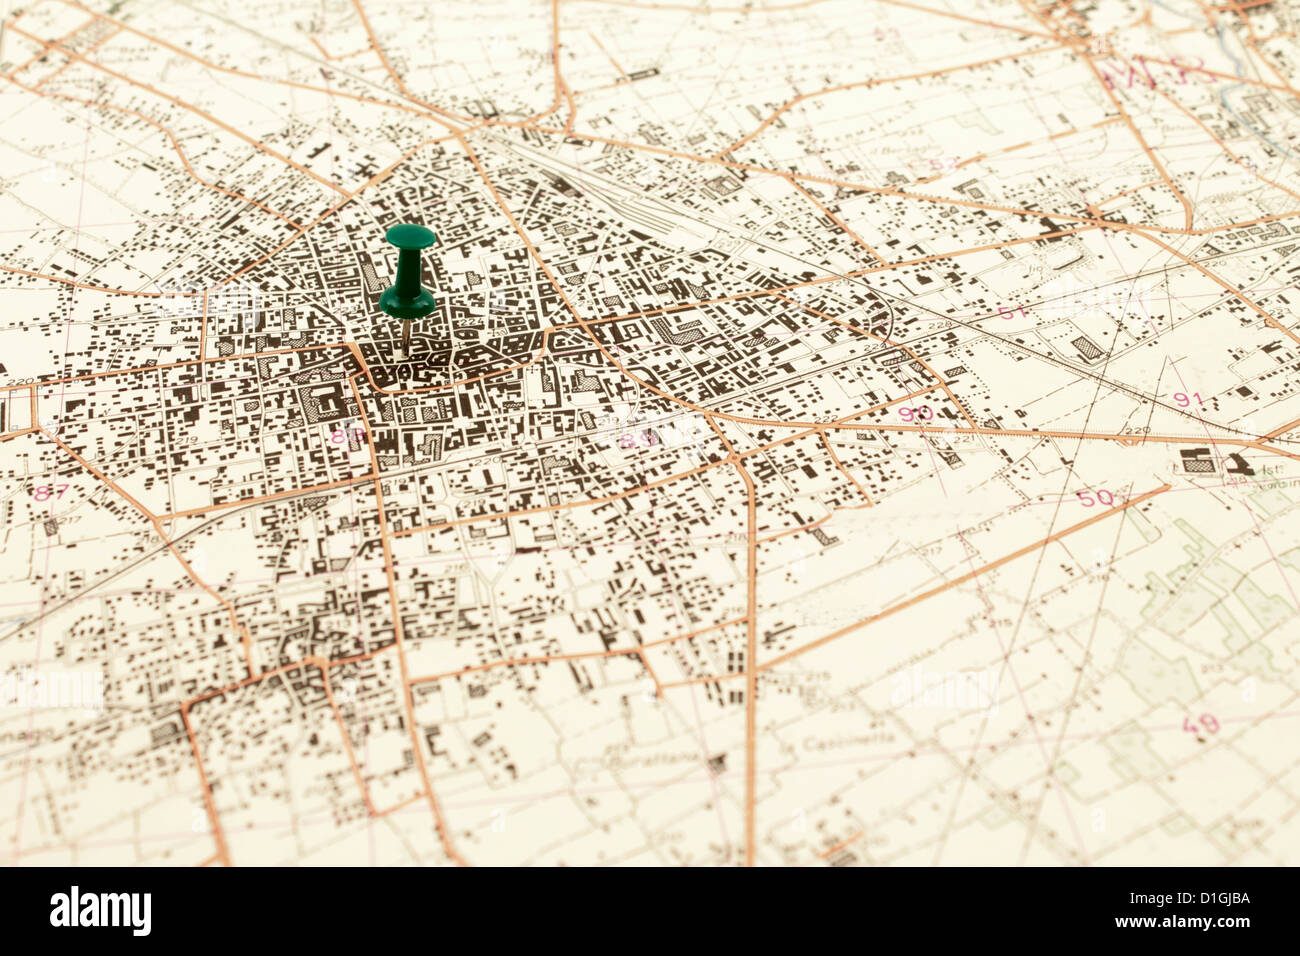 Thumbtack marks the center of an old city map. - Stock Image